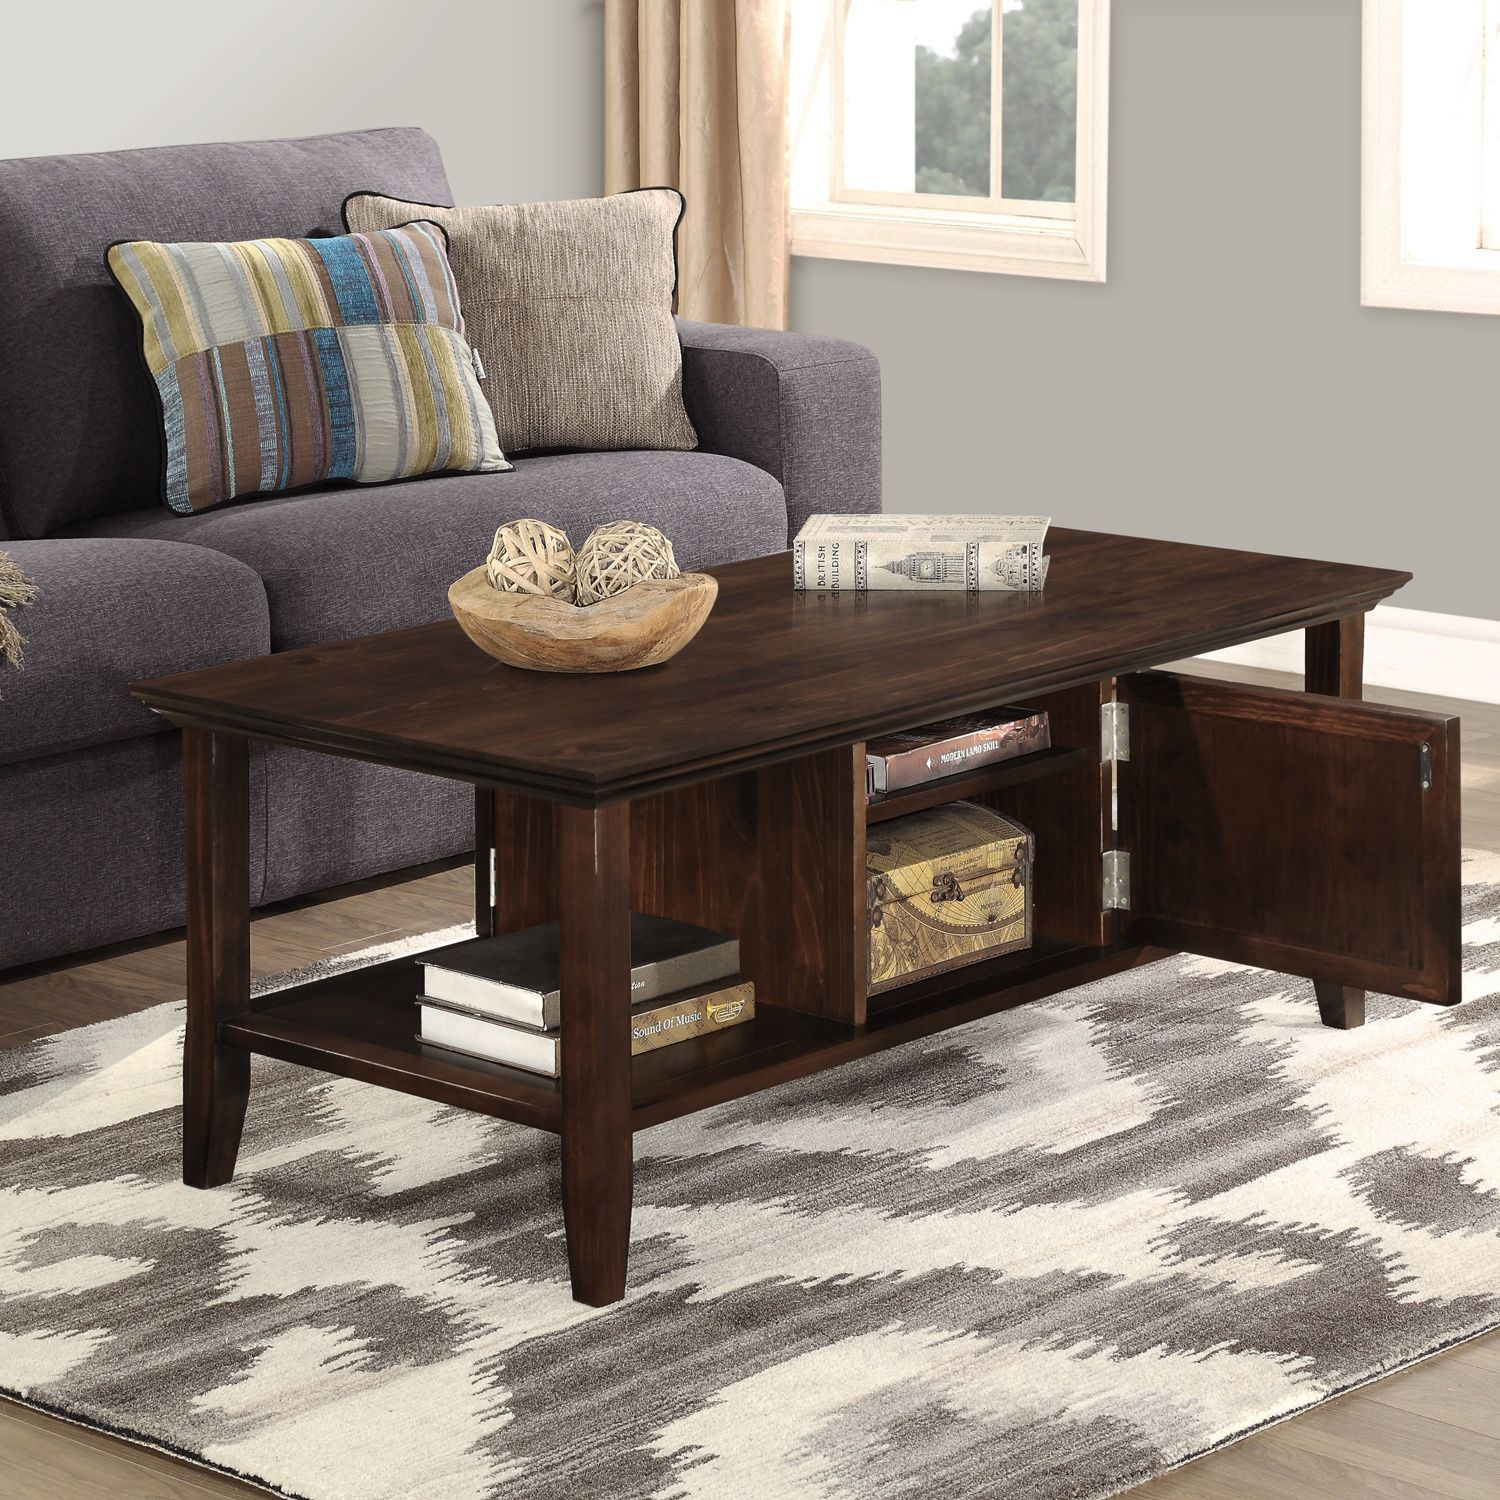 Small Coffee Tables Home Bargains: WYNDENHALL Normandy Tobacco Brown Coffee Table